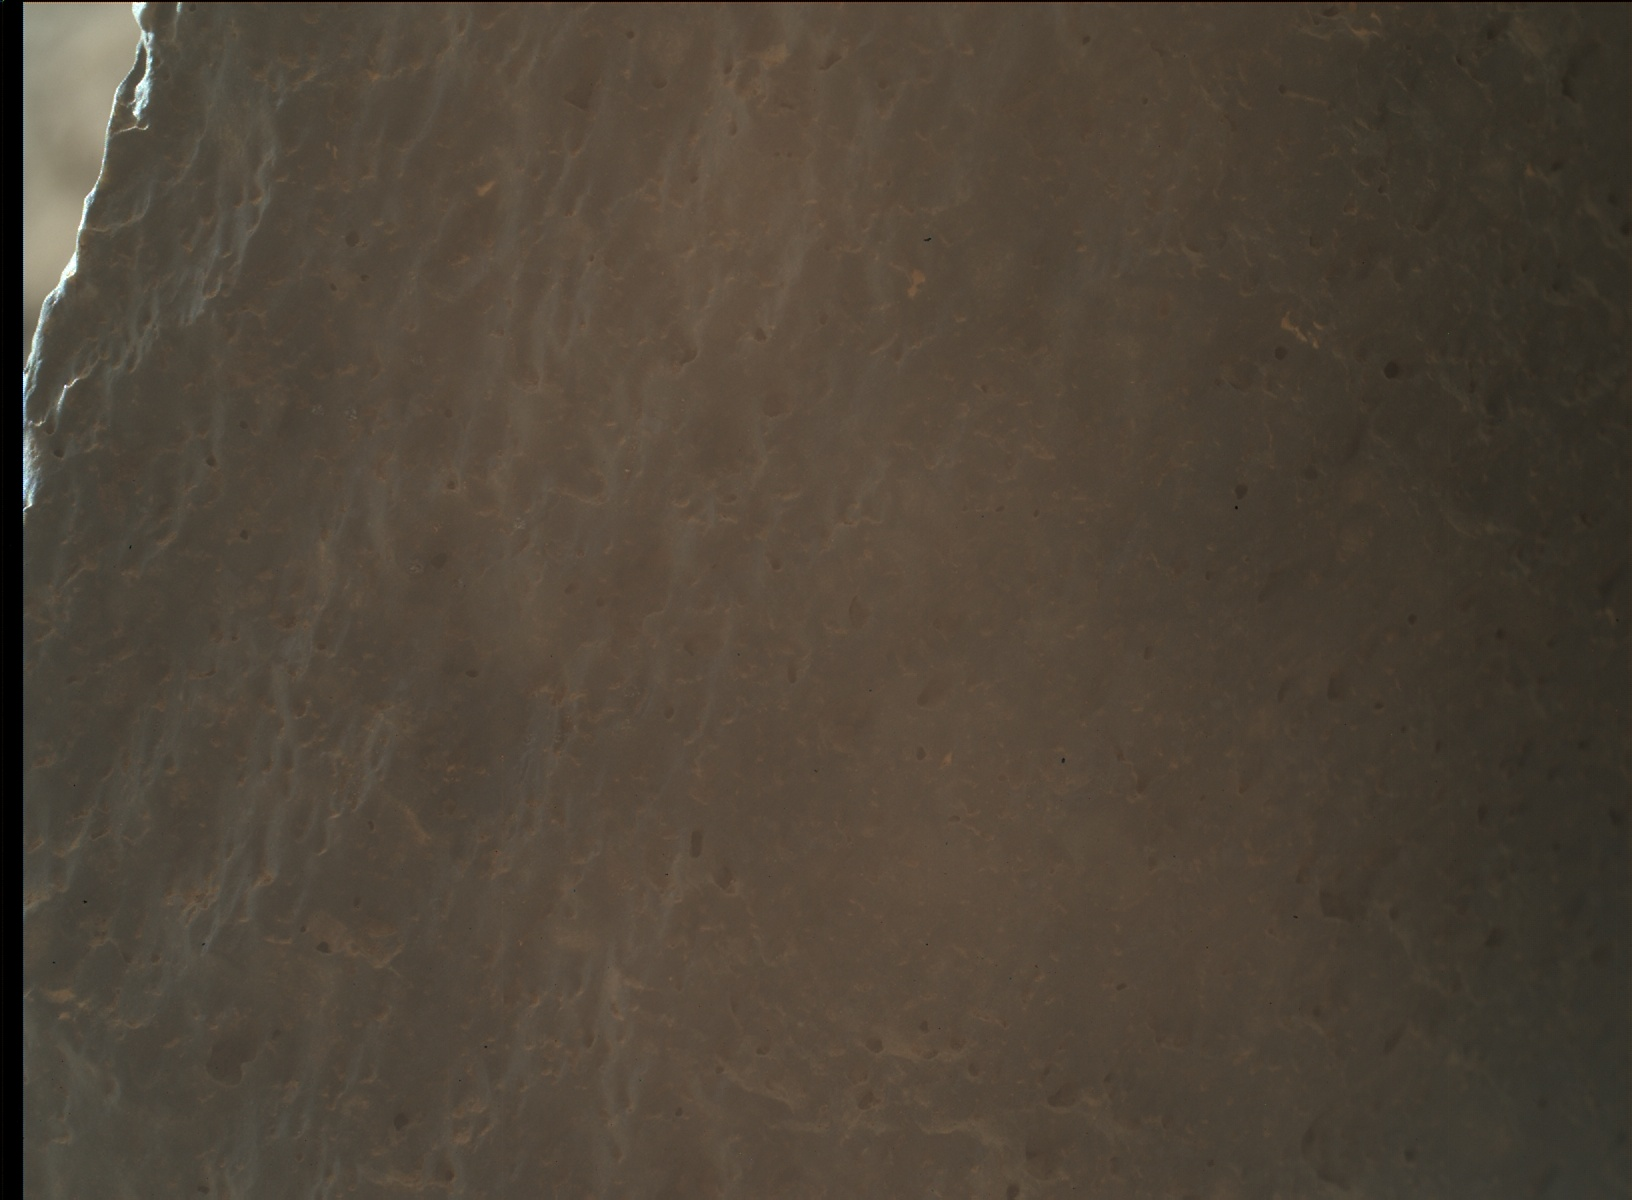 Nasa's Mars rover Curiosity acquired this image using its Mars Hand Lens Imager (MAHLI) on Sol 2016